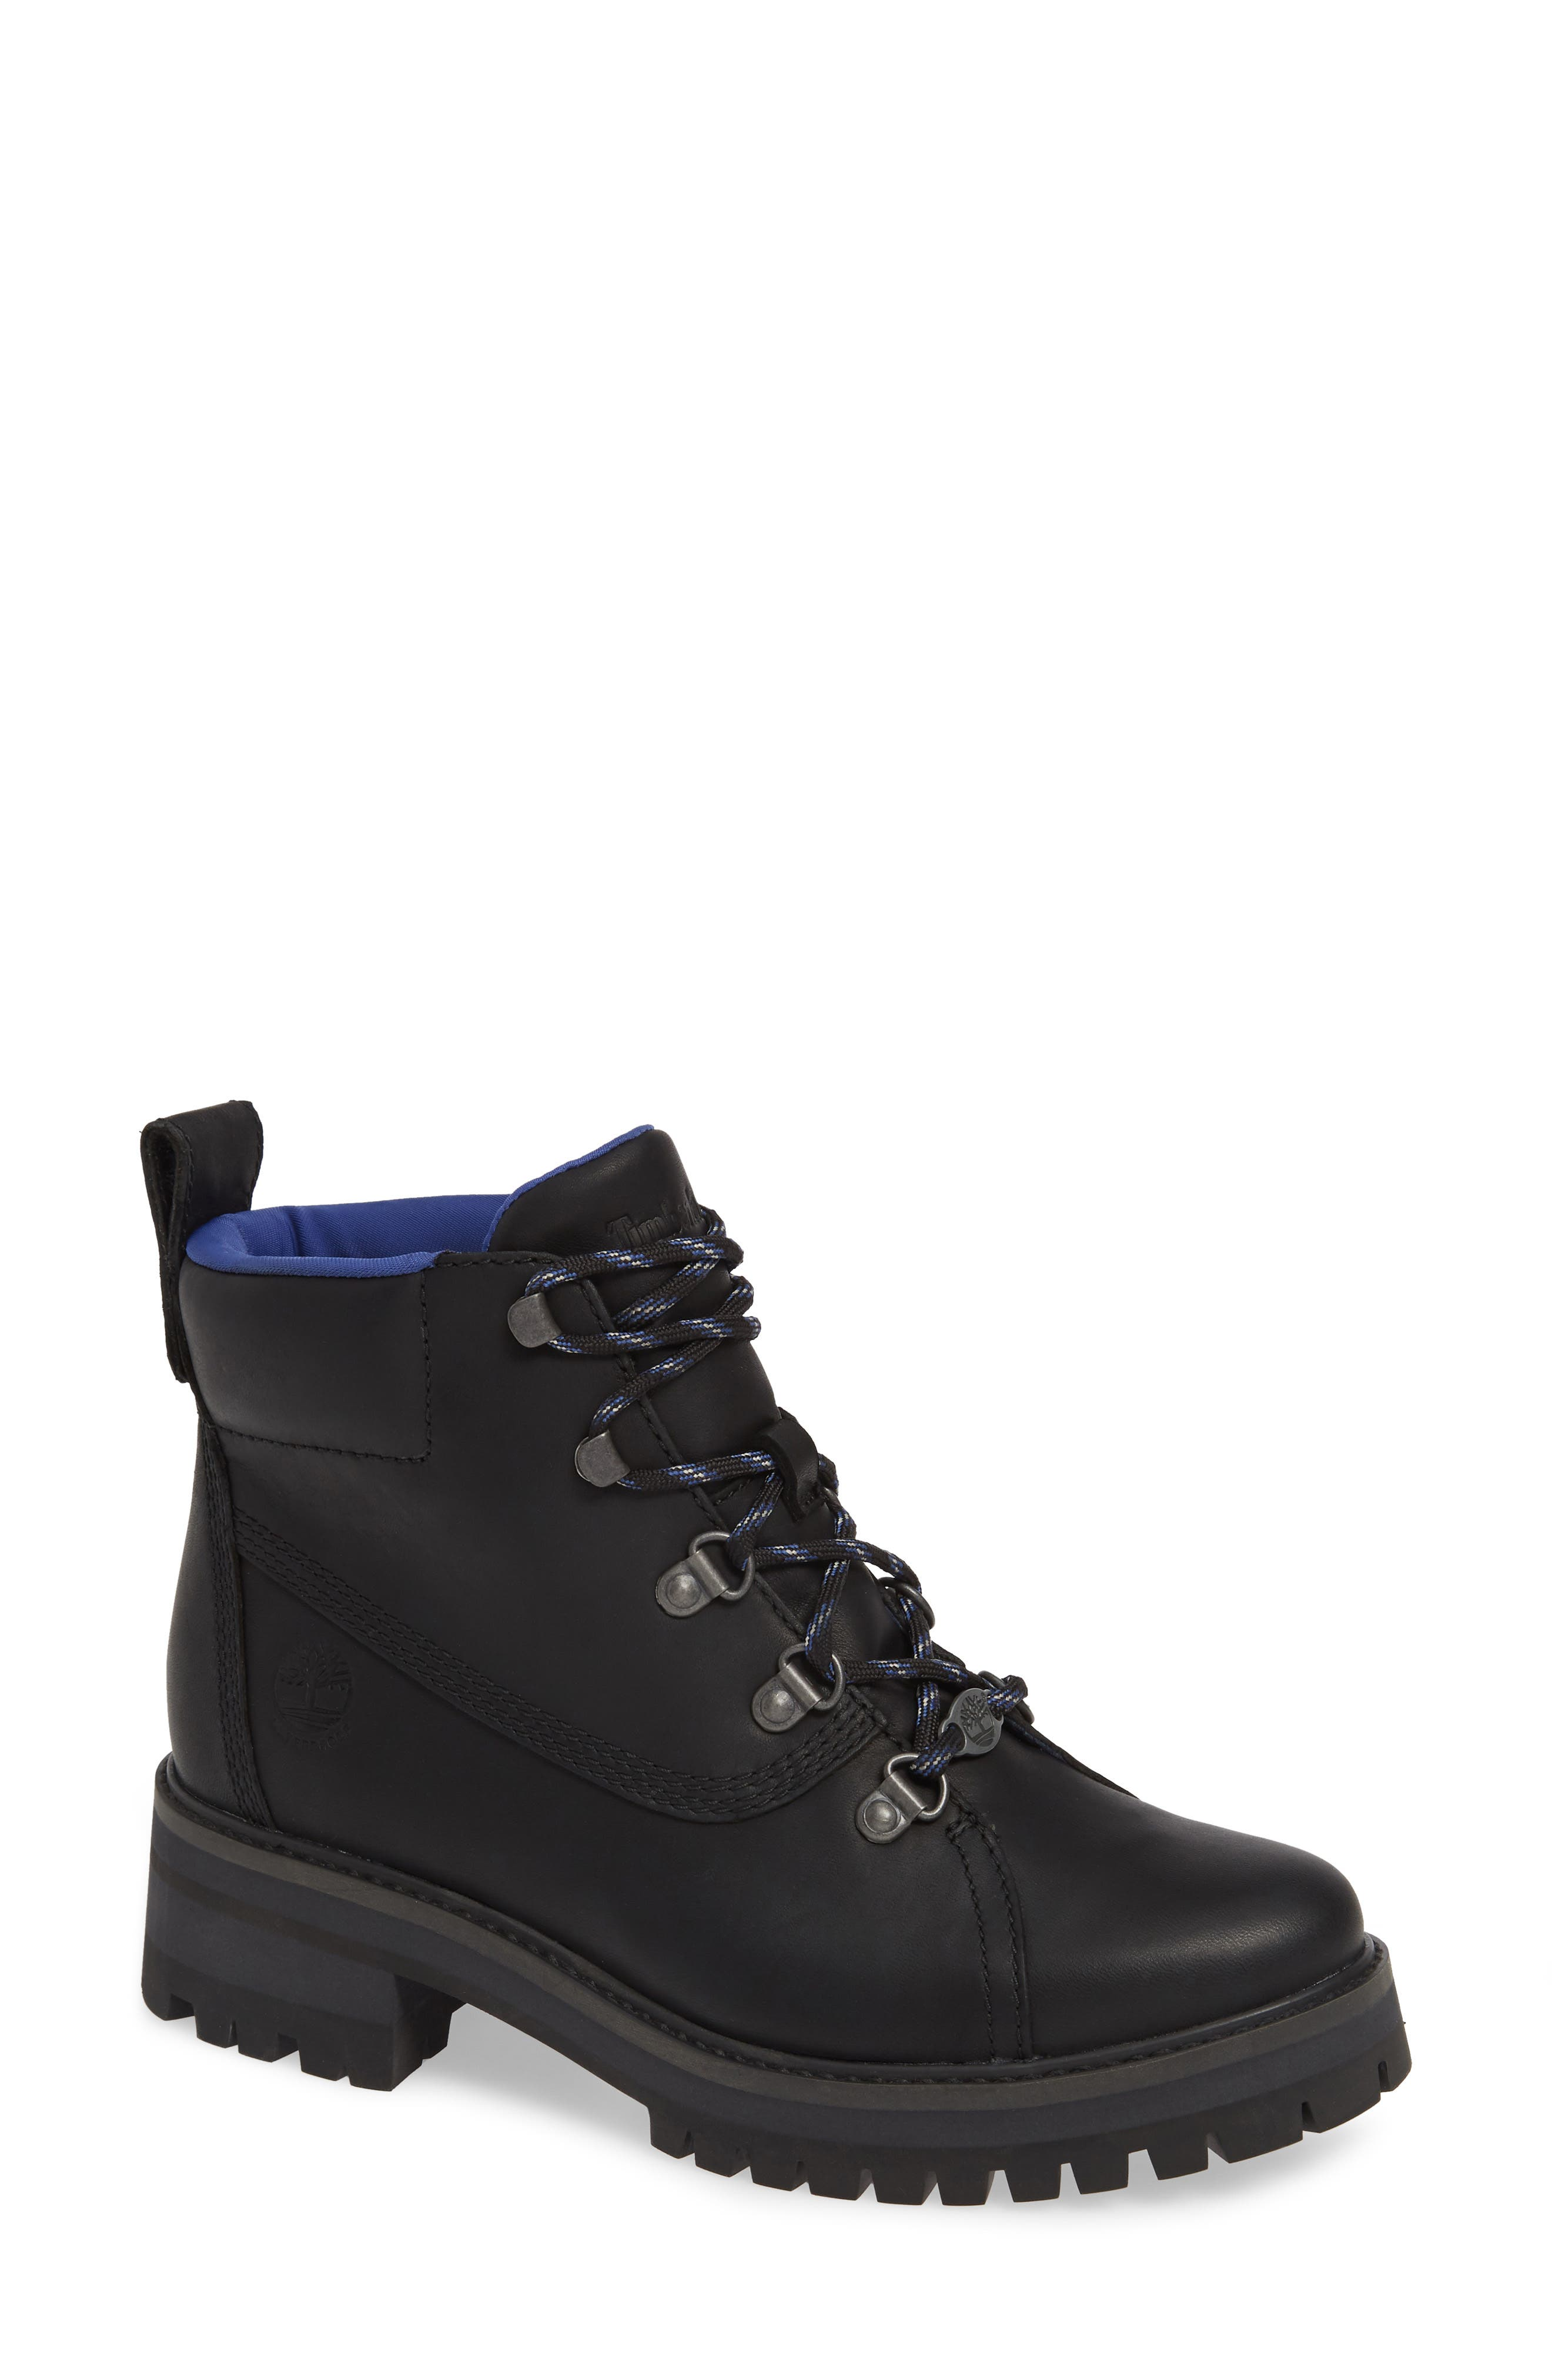 Courmayeur Valley Waterproof Hiking Boot,                             Main thumbnail 1, color,                             BLACK NUBUCK BLACK OUT LEATHER